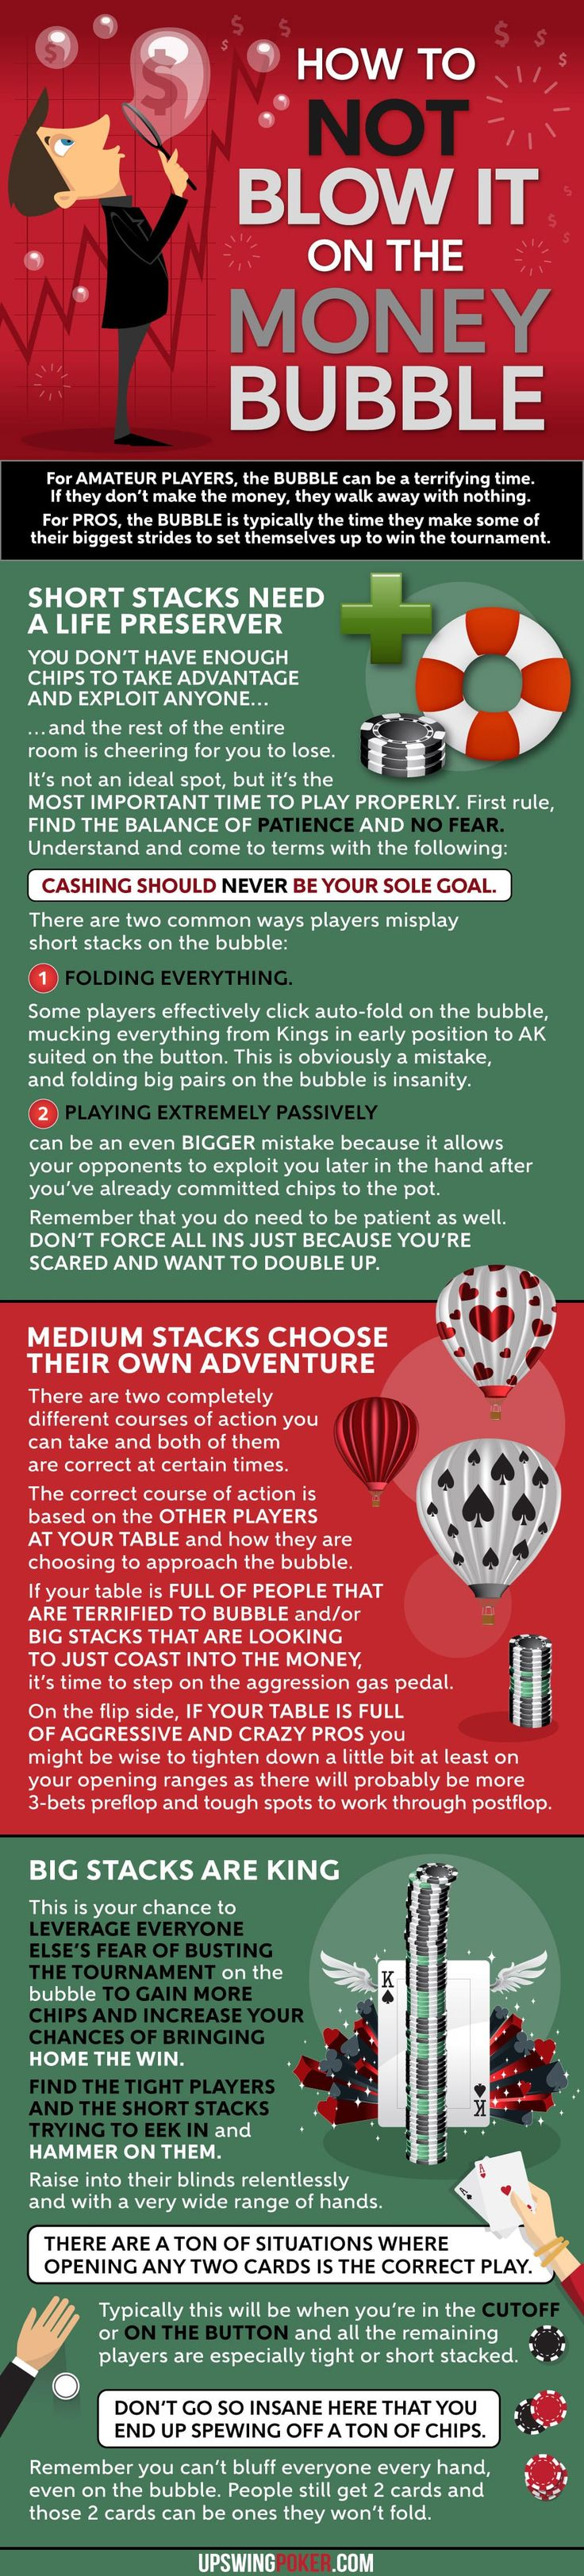 Money Bubble Tournament Poker Strategy Learn To Play The Bubble With  Confidence, No Matter